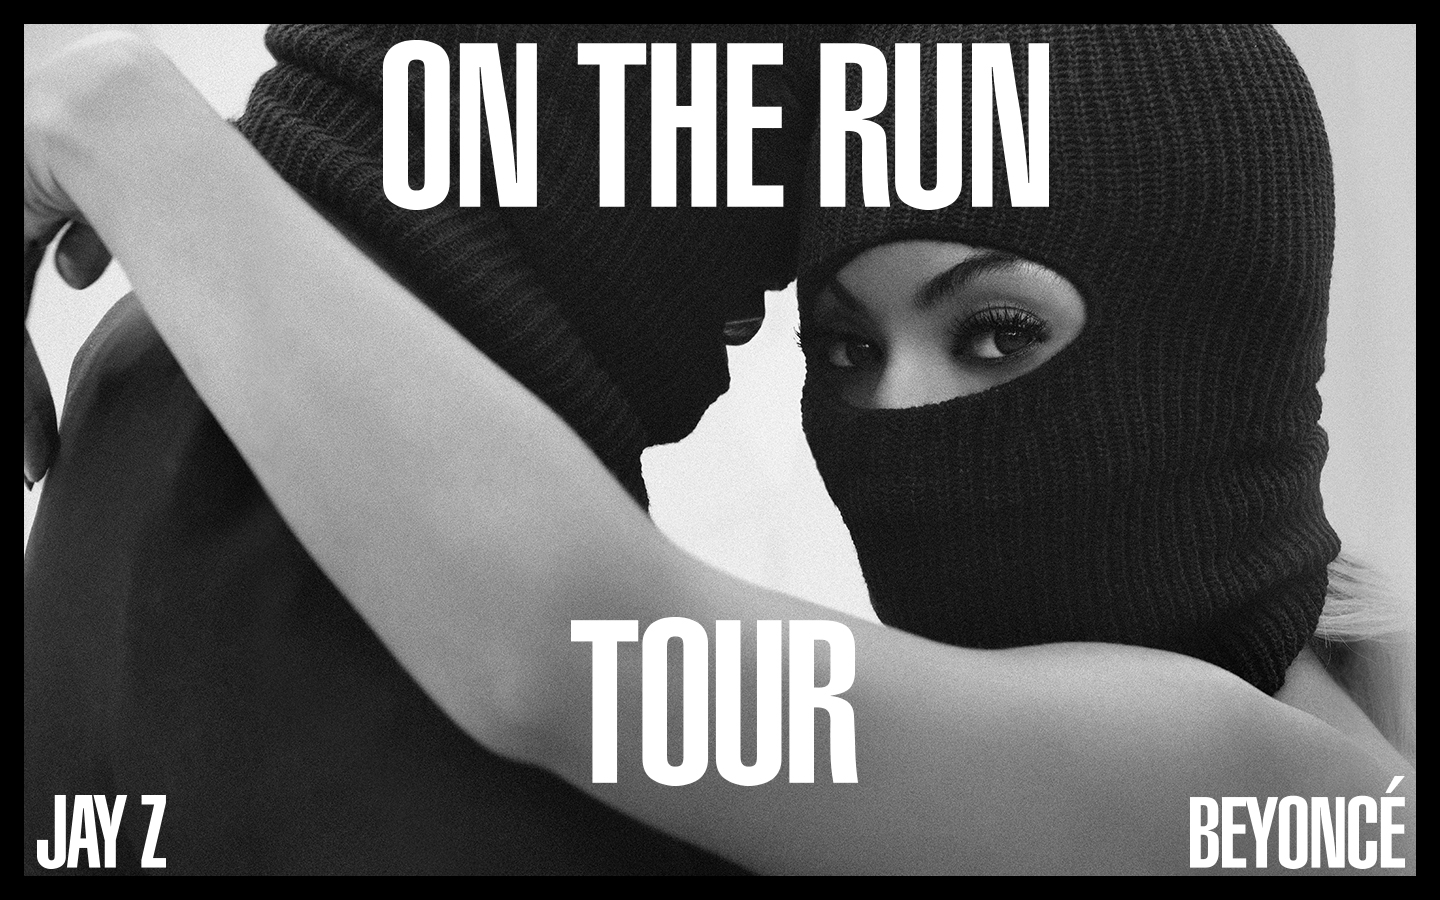 on-the-run-beyonce-jay-z-tour